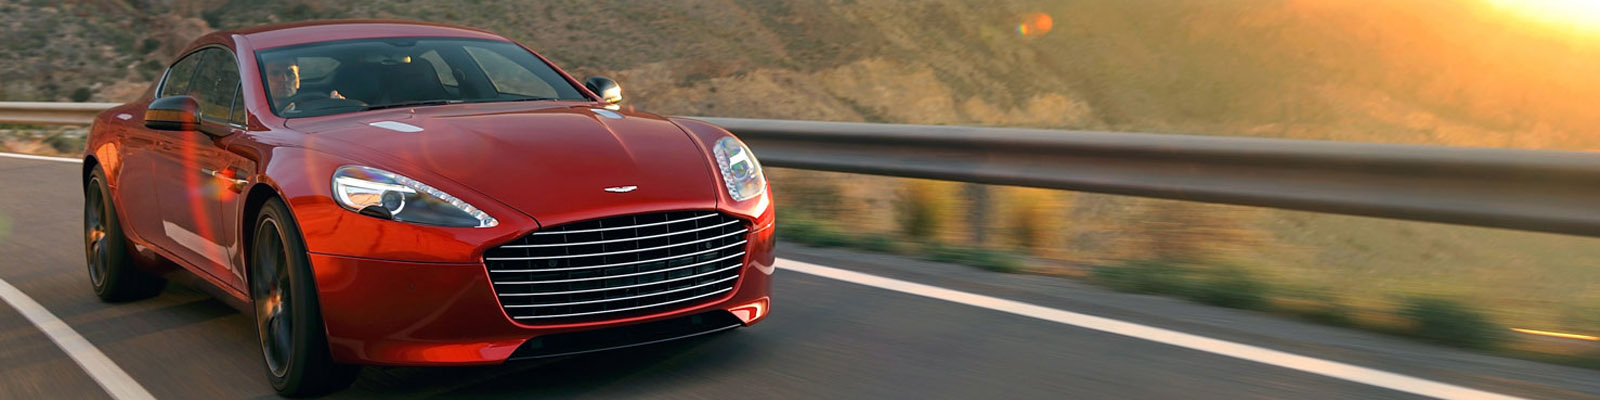 RAPIDE S THE POWER OF LUXURY